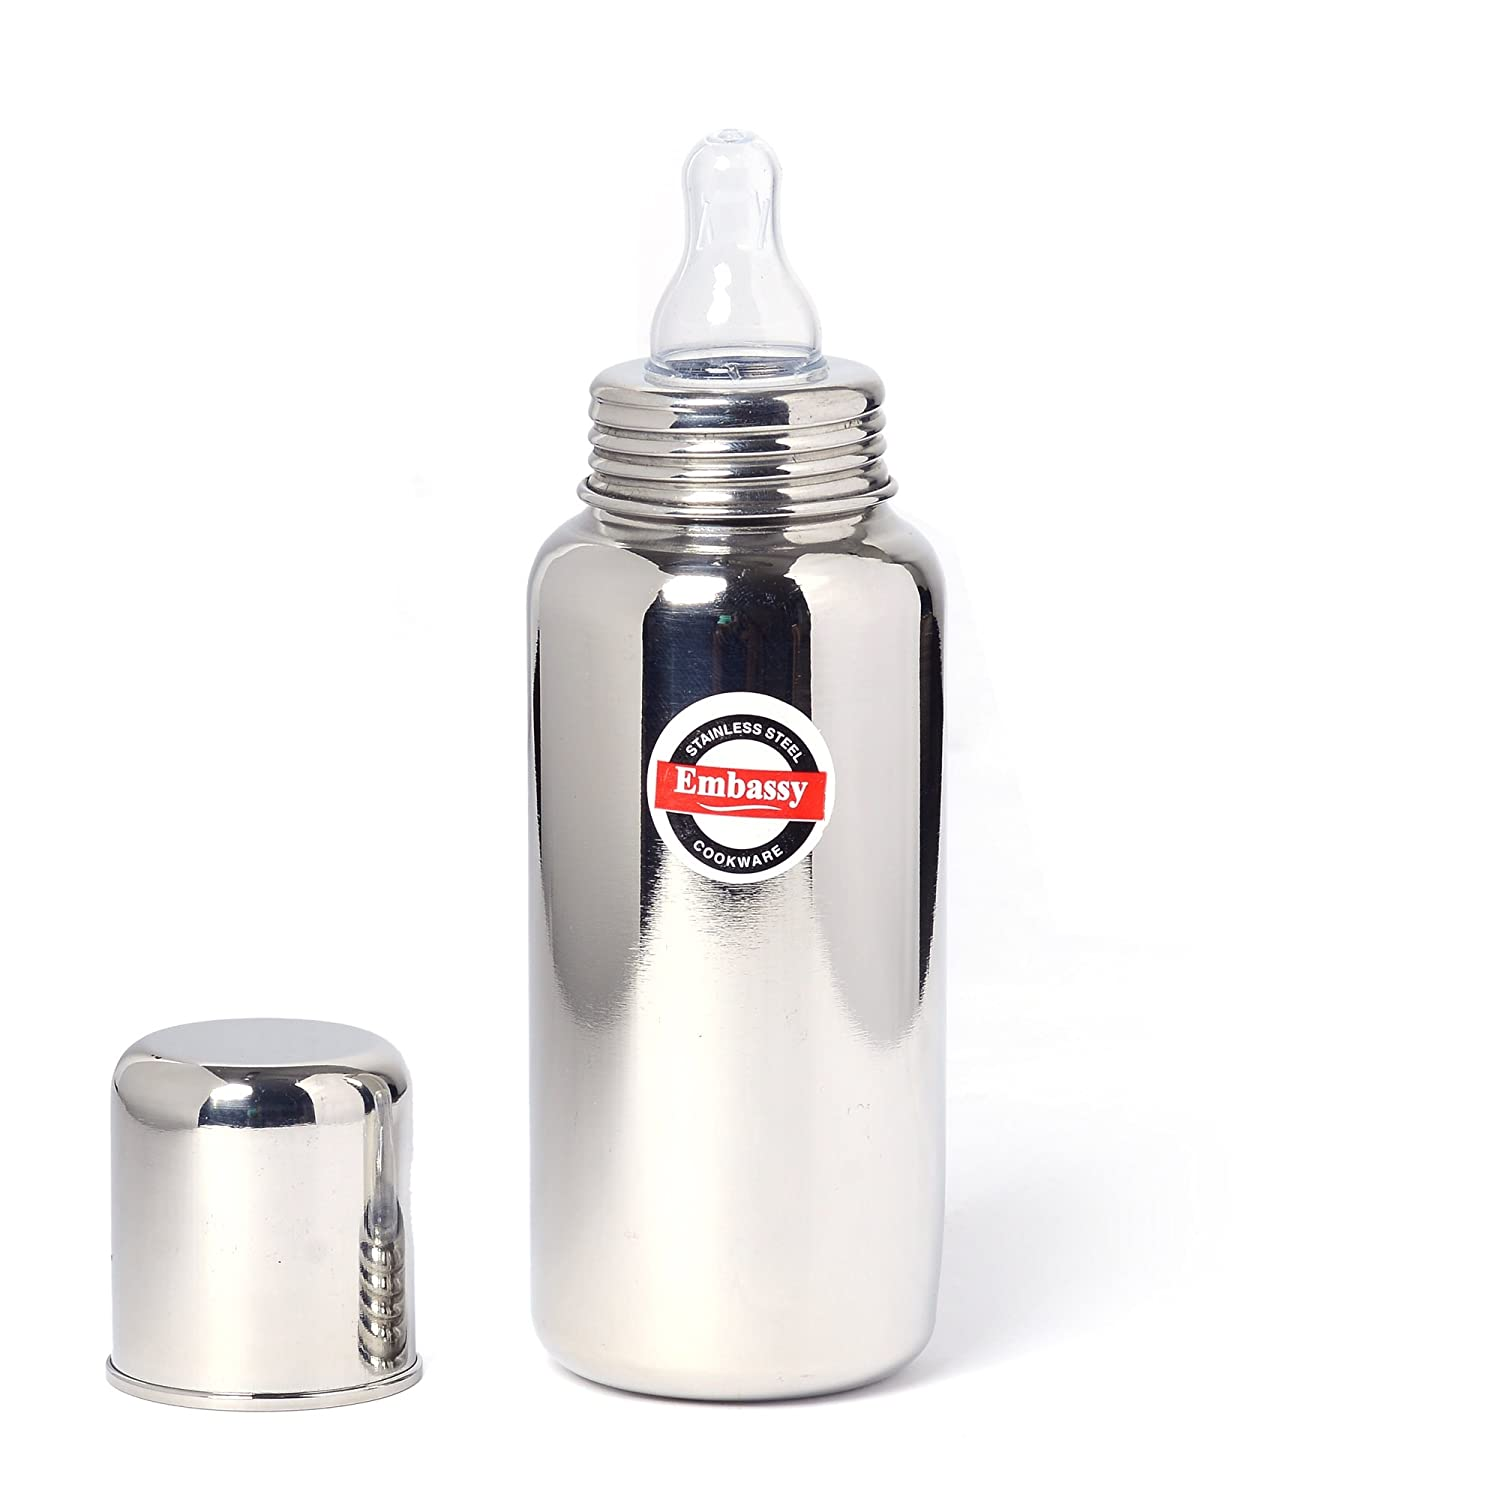 7. Embassy 304 Grade Stainless Steel Baby Feeding Bottle